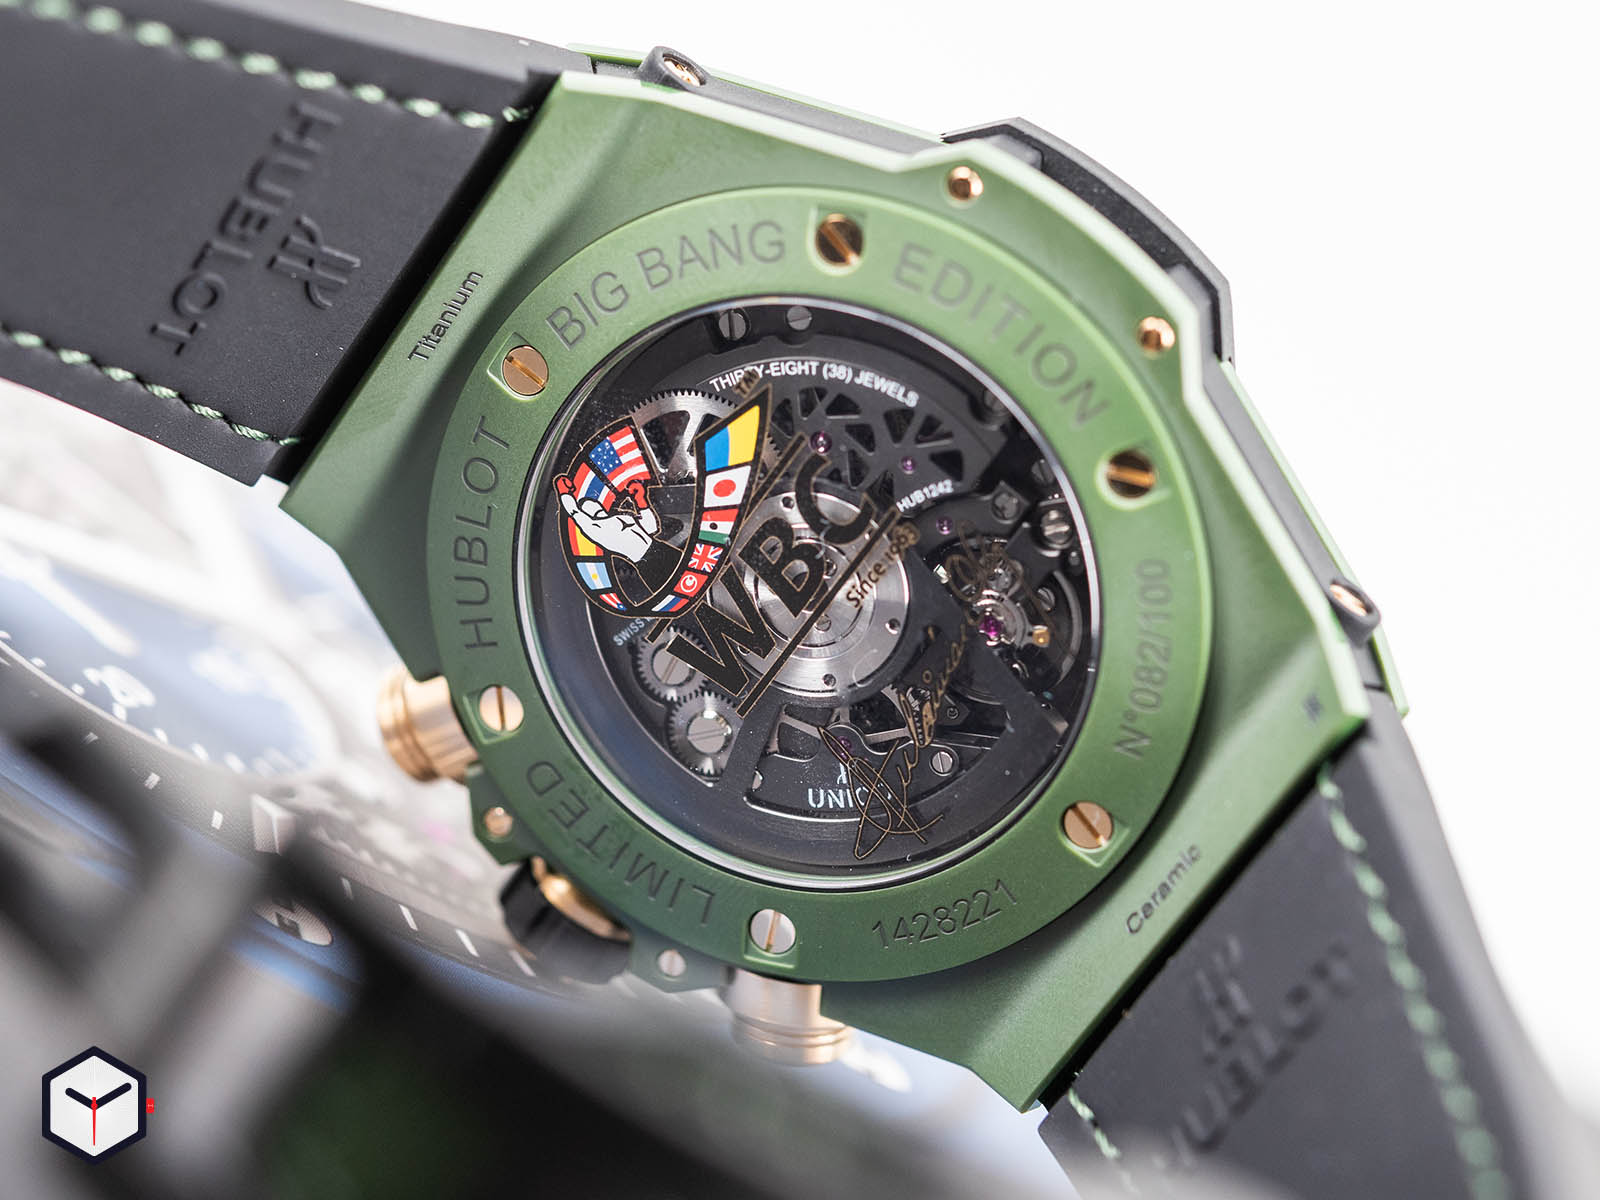 411-gx-1189-lr-wbc19-hublot-big-bang-unico-wbc-6.jpg